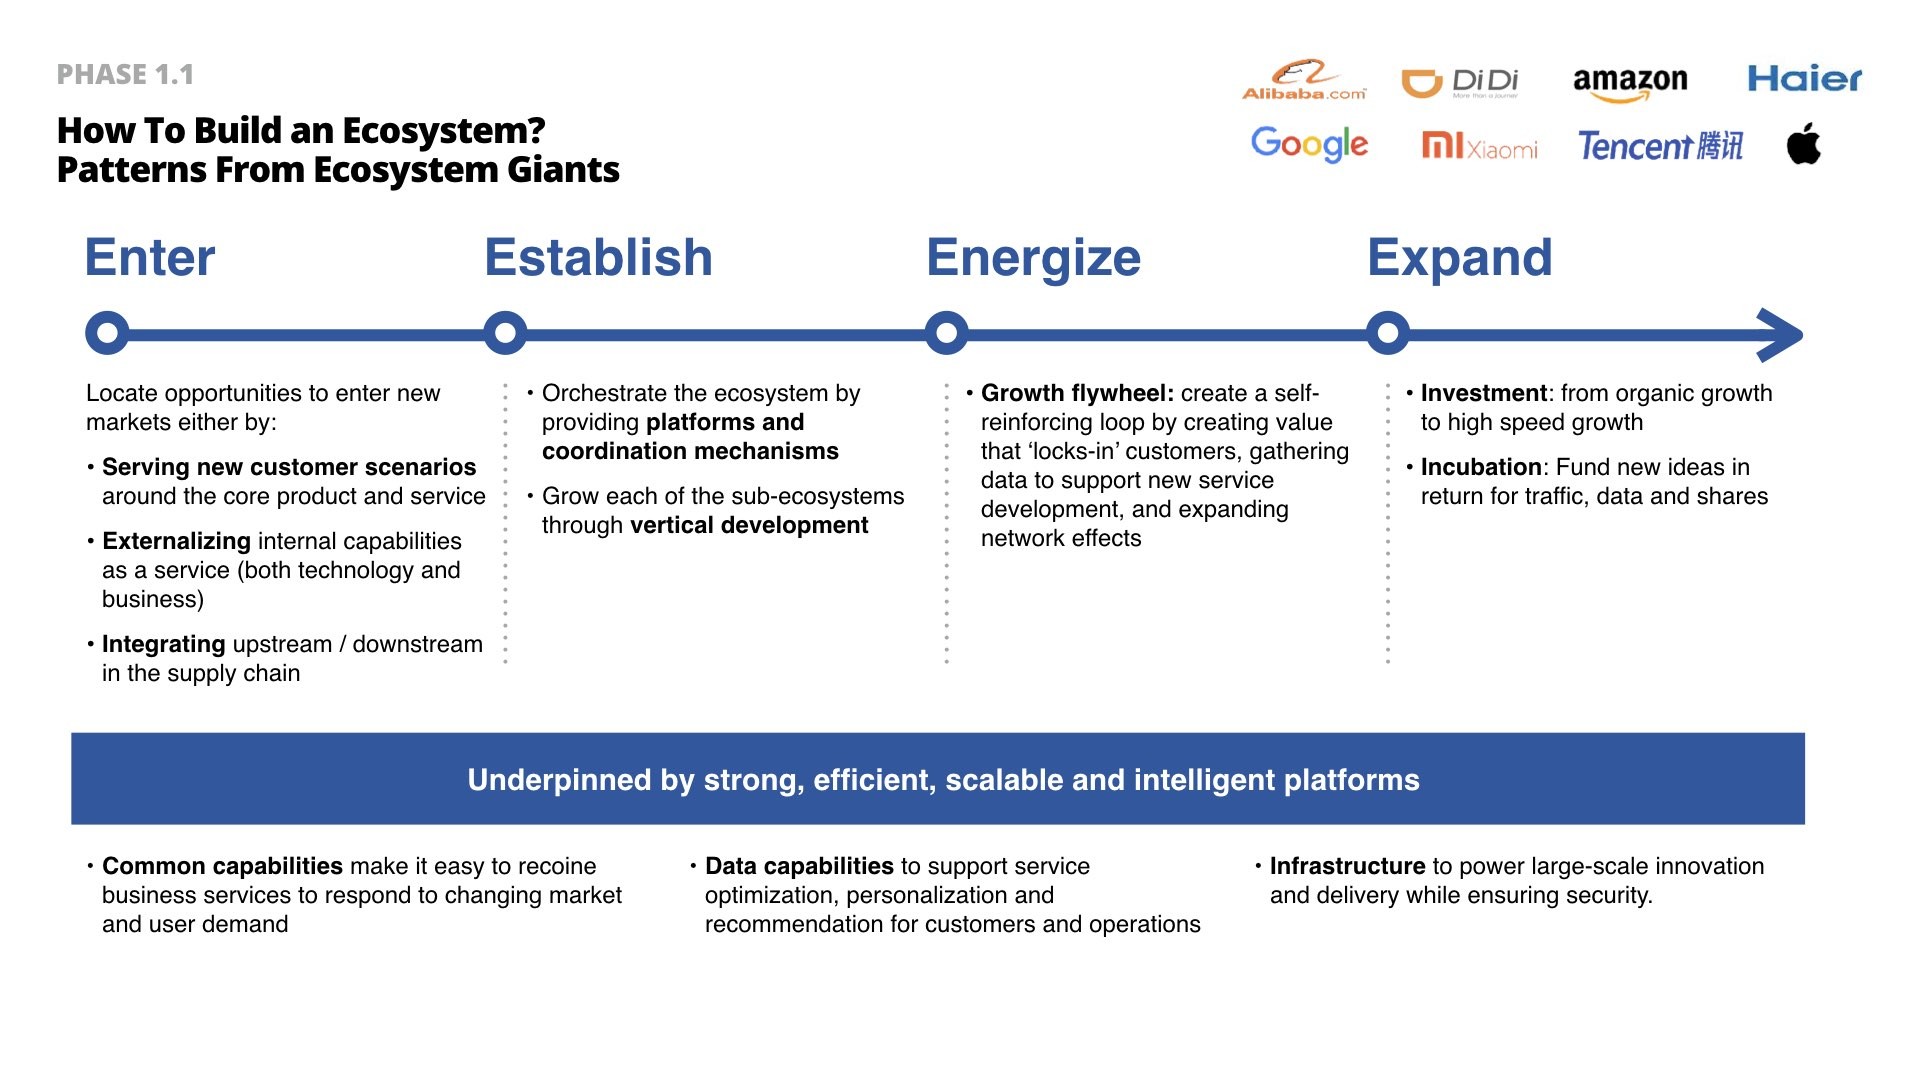 Ecosystem evolution map:  Enter, Establish, Energize & Expand